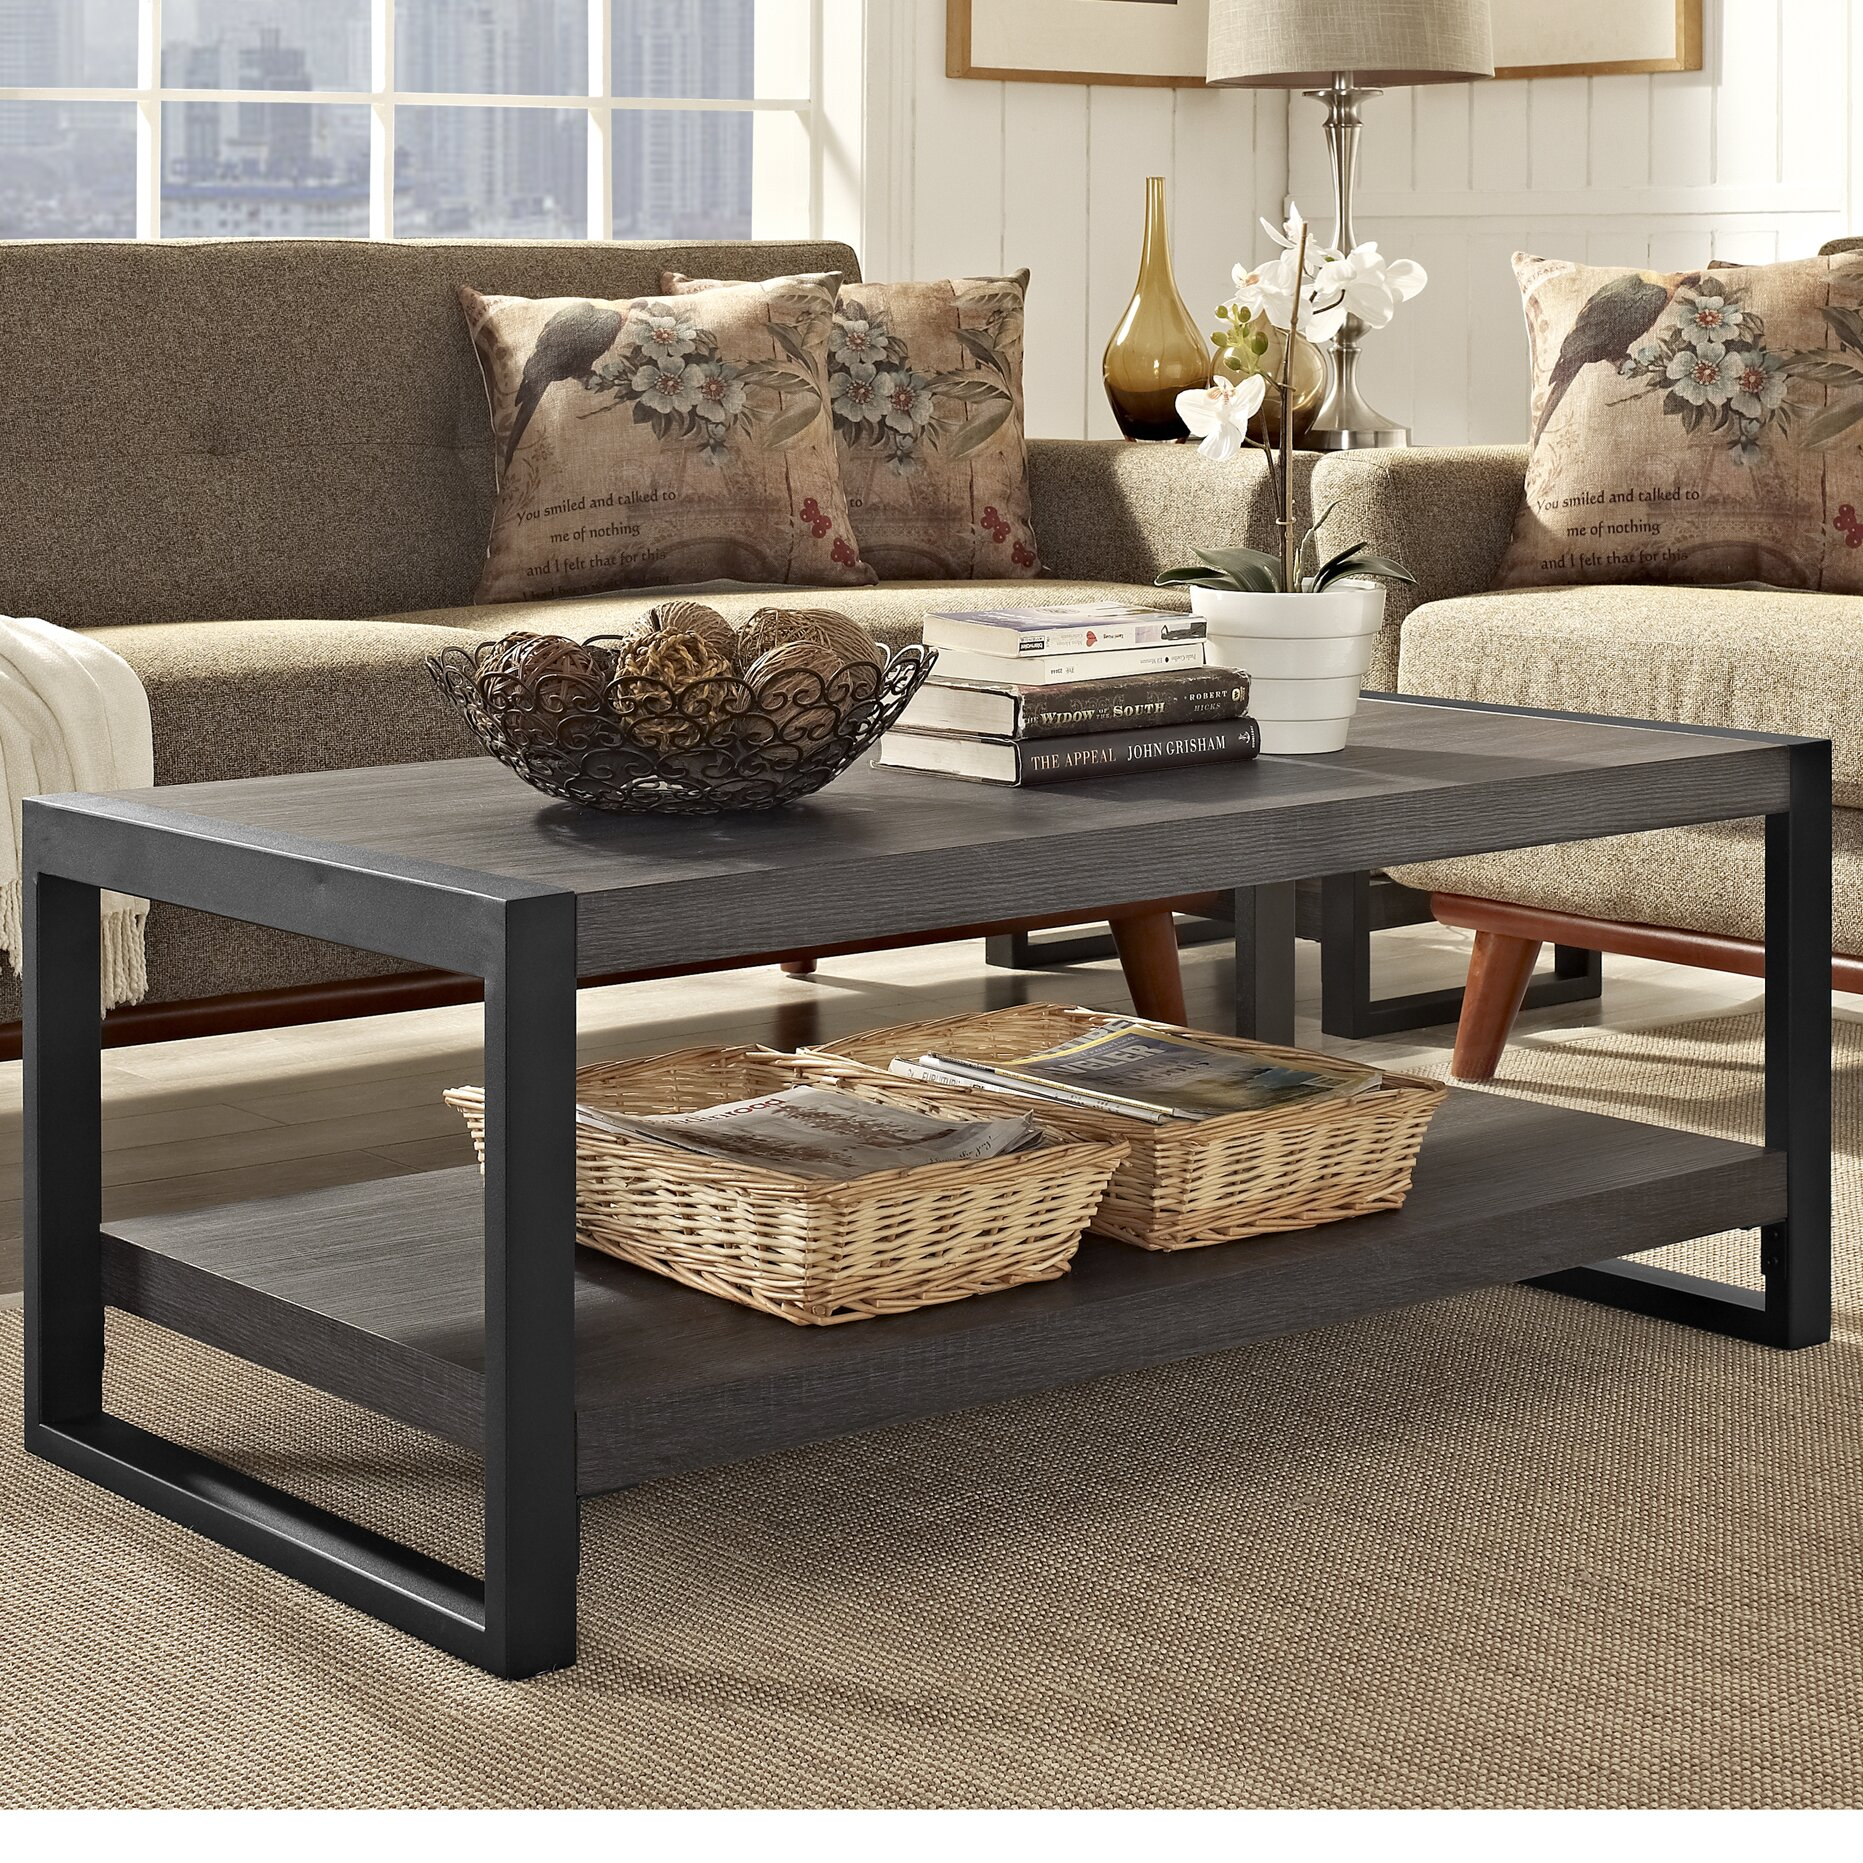 City grove coffee table wayfair Angelo home patio furniture